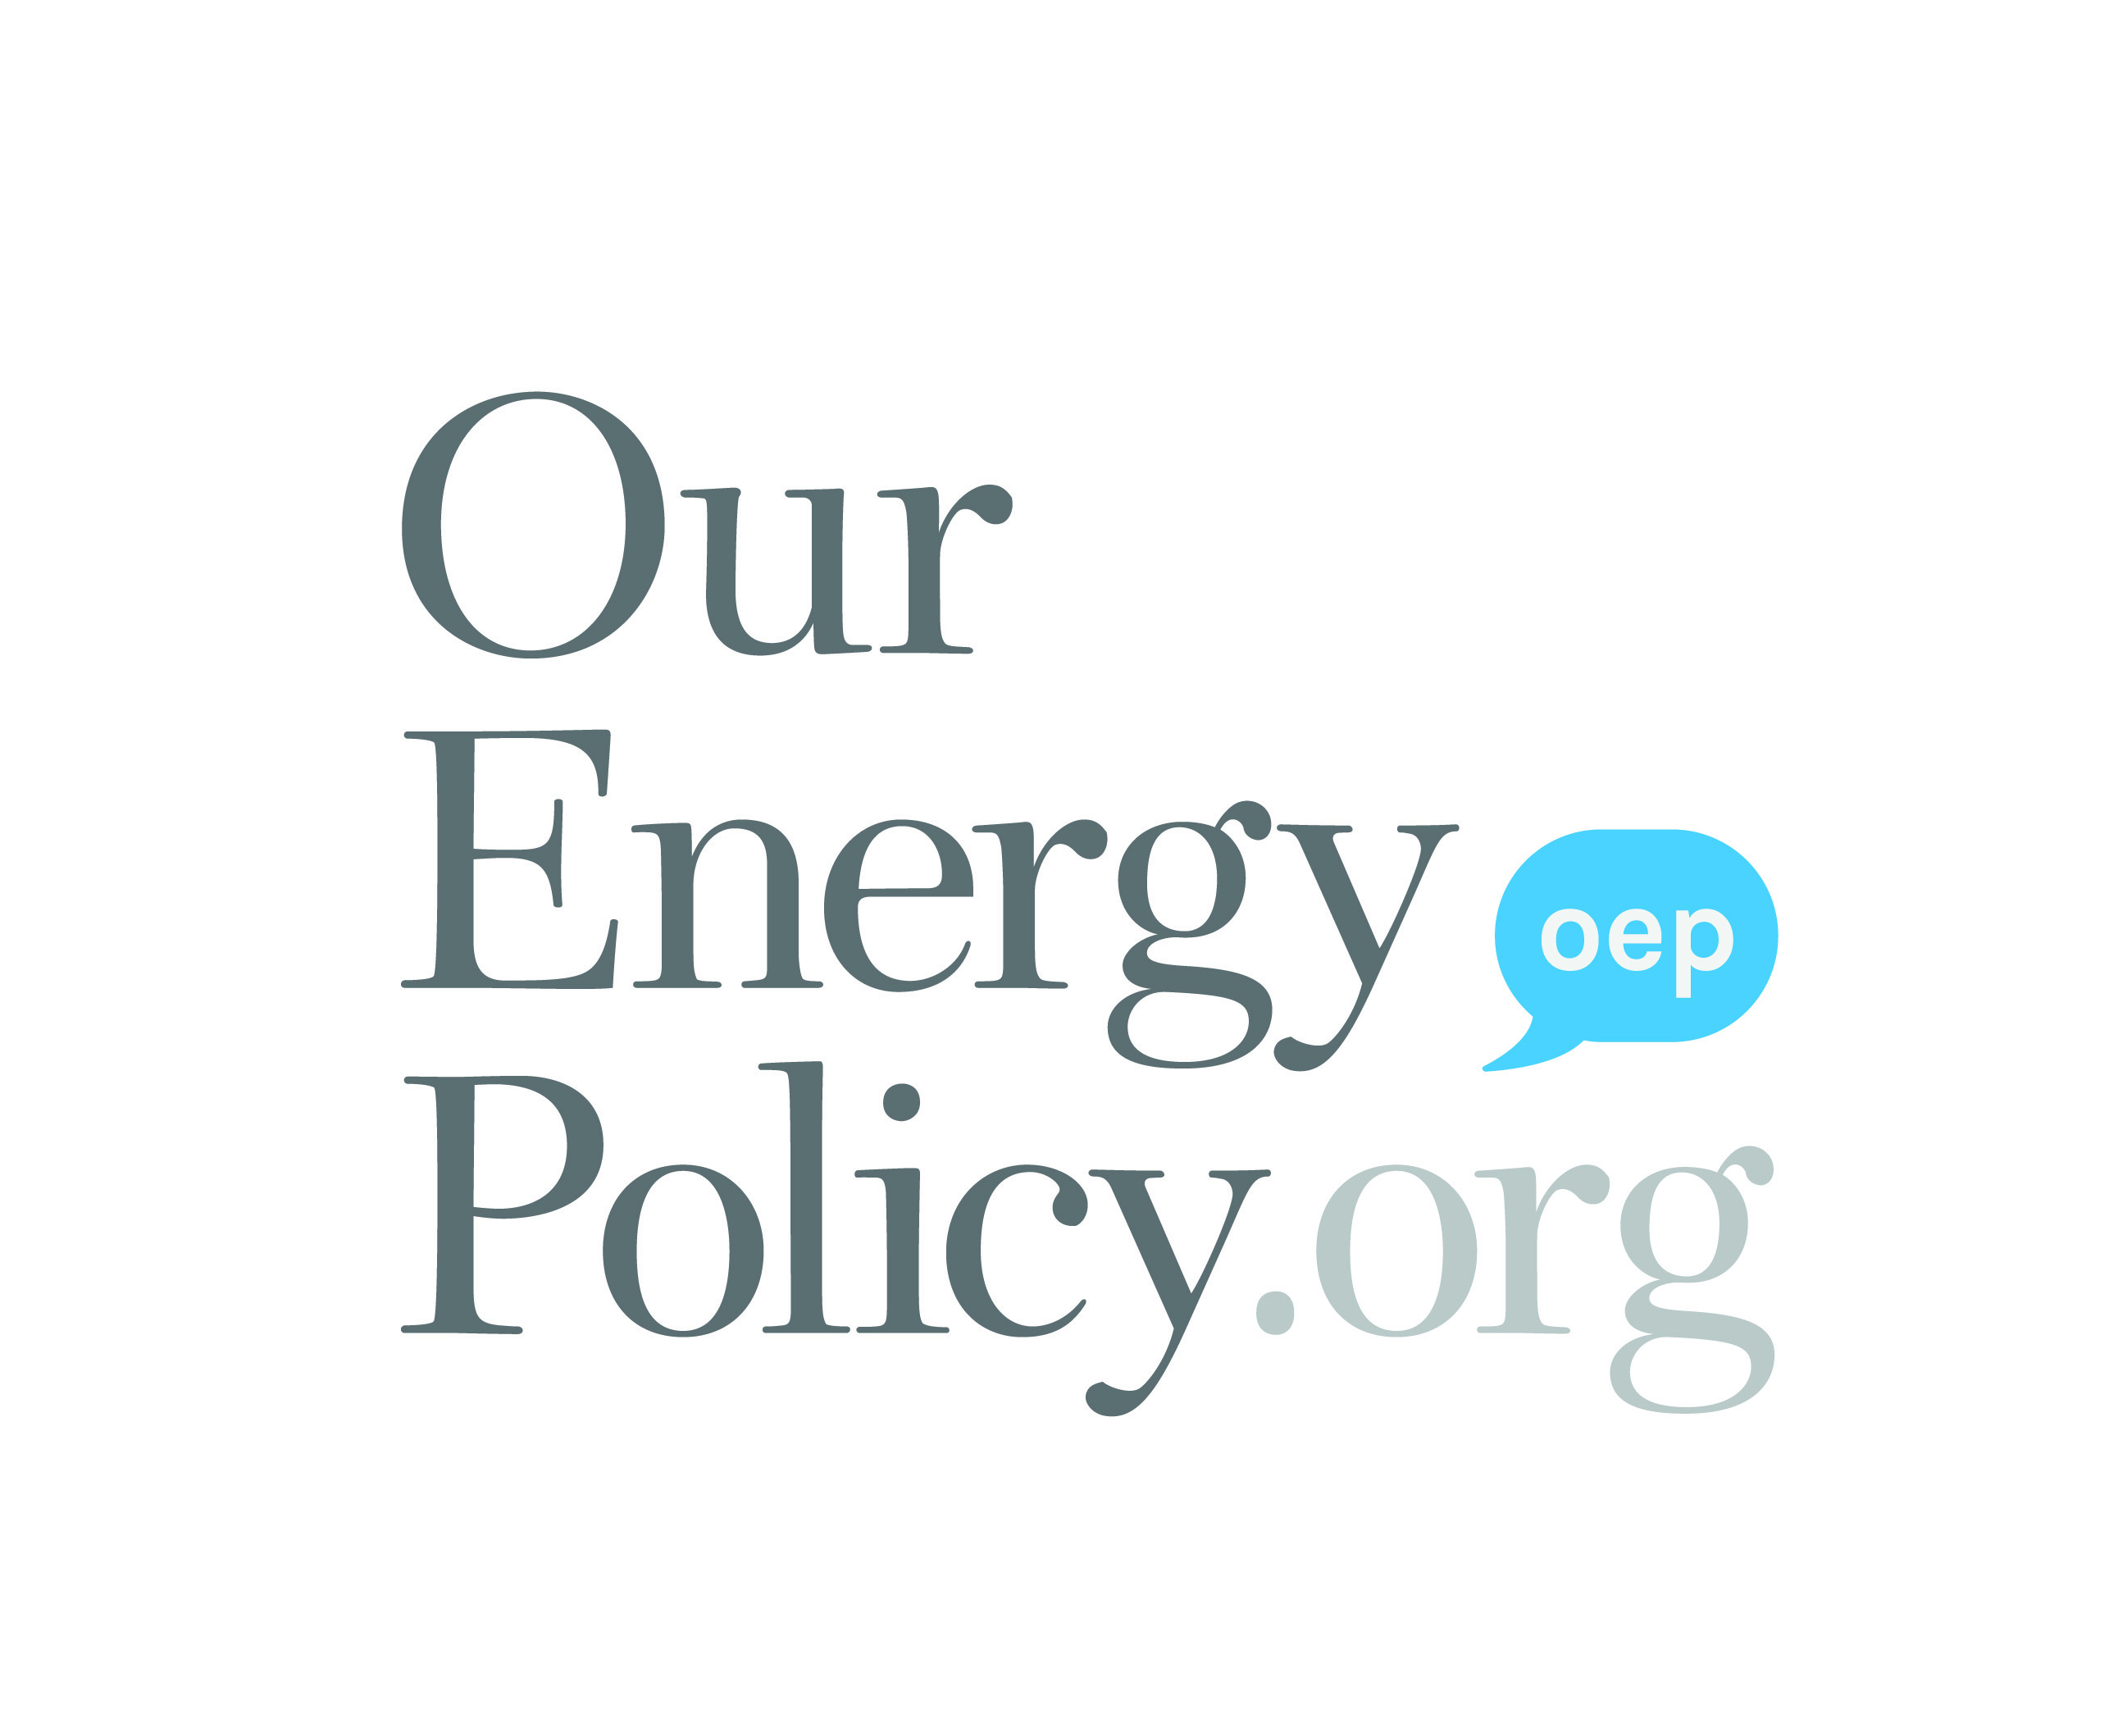 OurEnergyPolicy.org